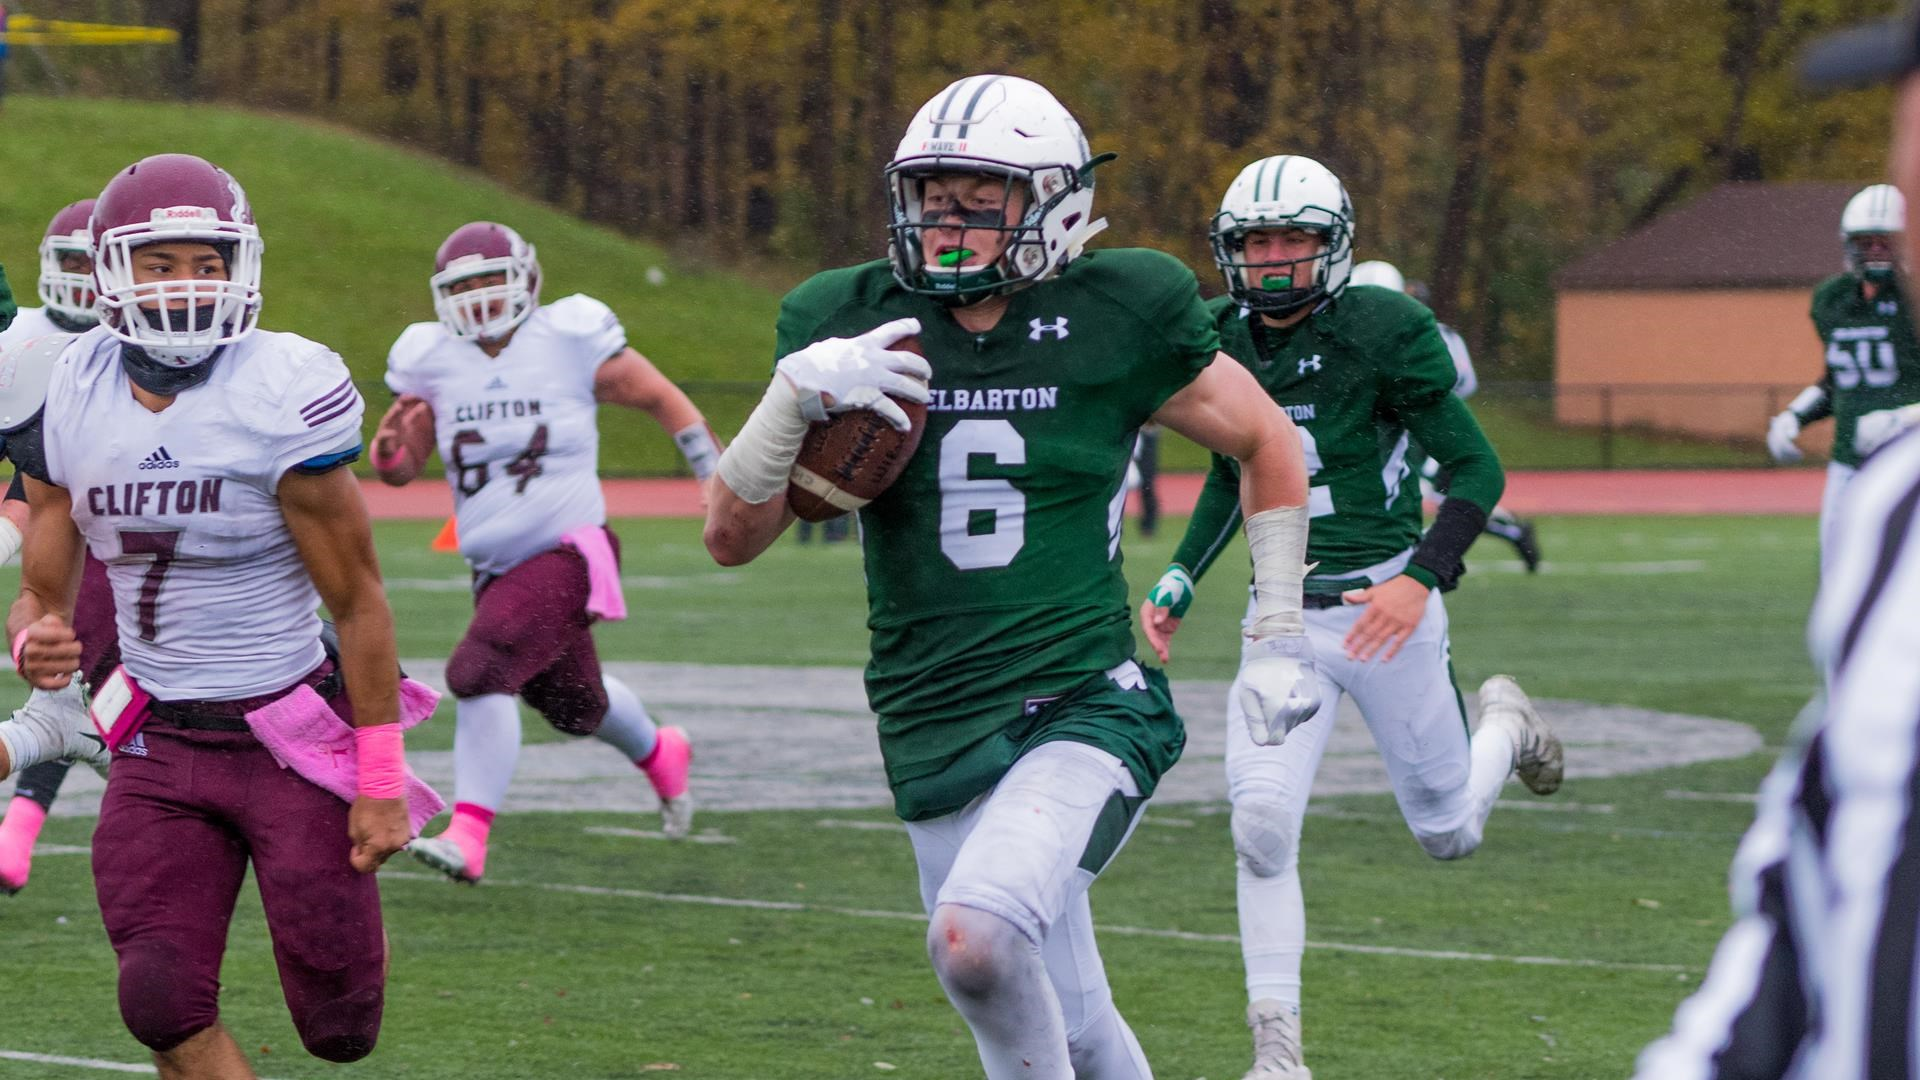 Delbarton Defeats Clifton 23 14 On Homecoming Day Delbarton Athletics